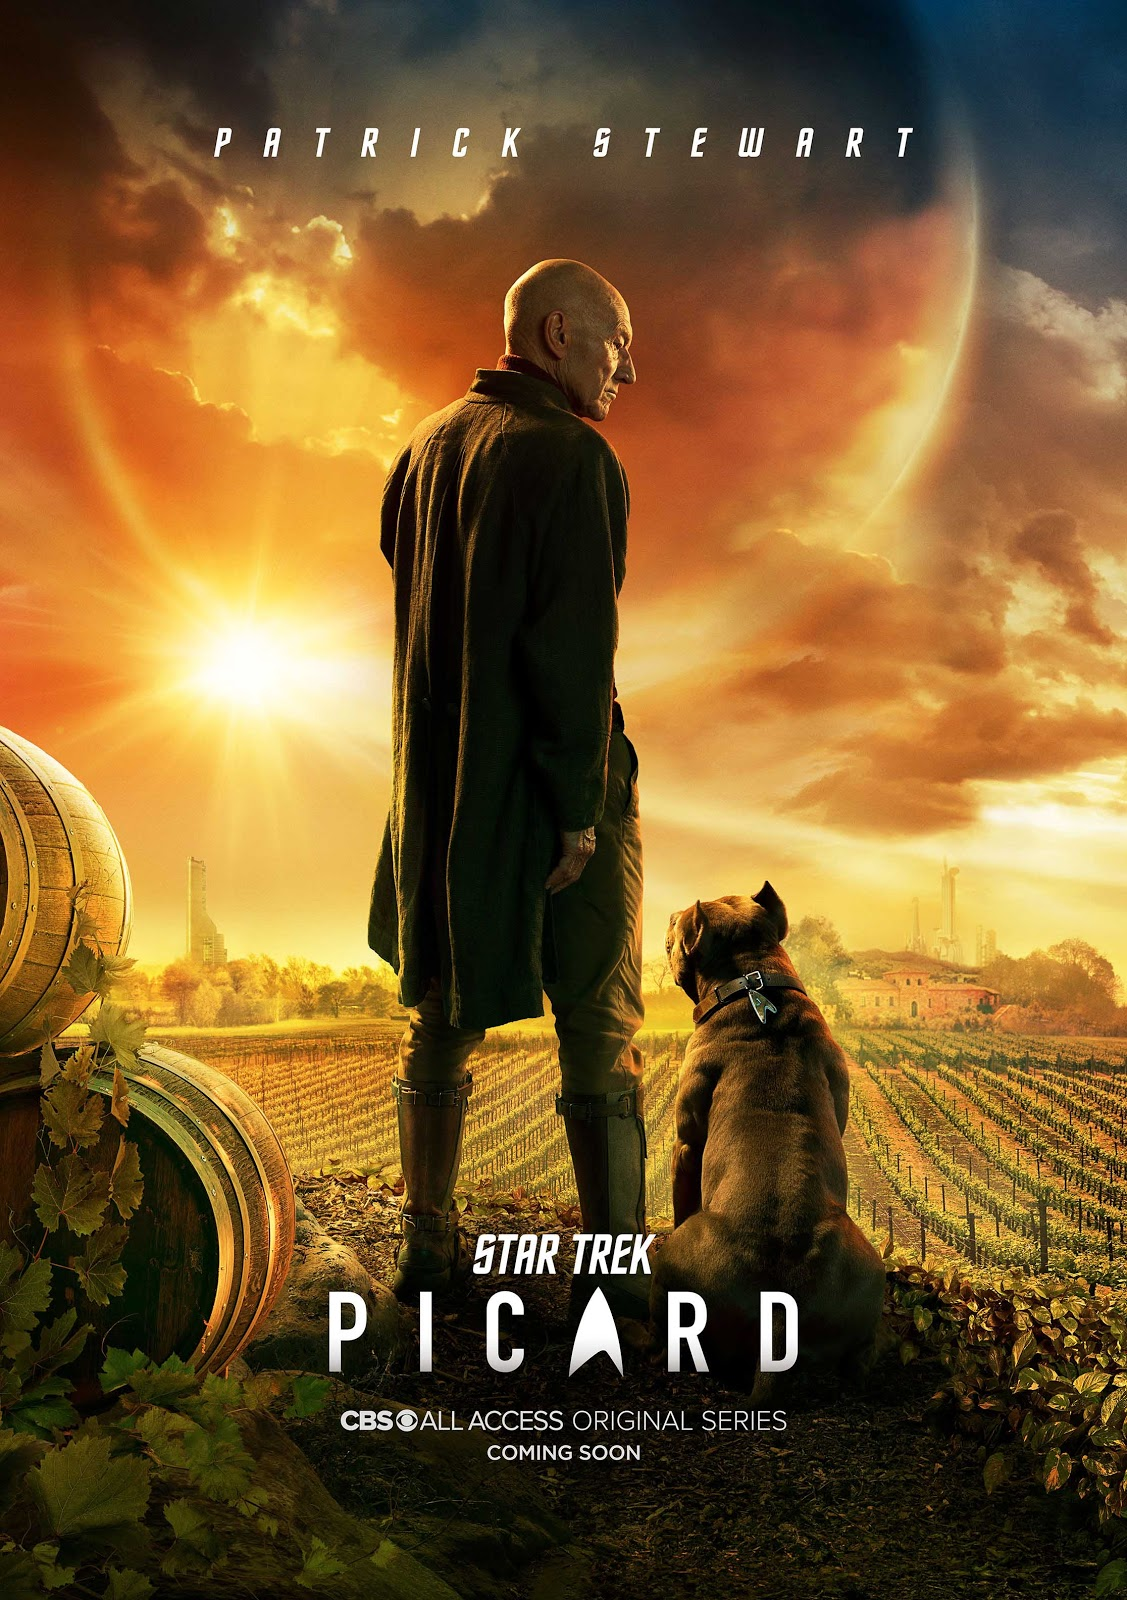 Star Trek Picard season 1 key art